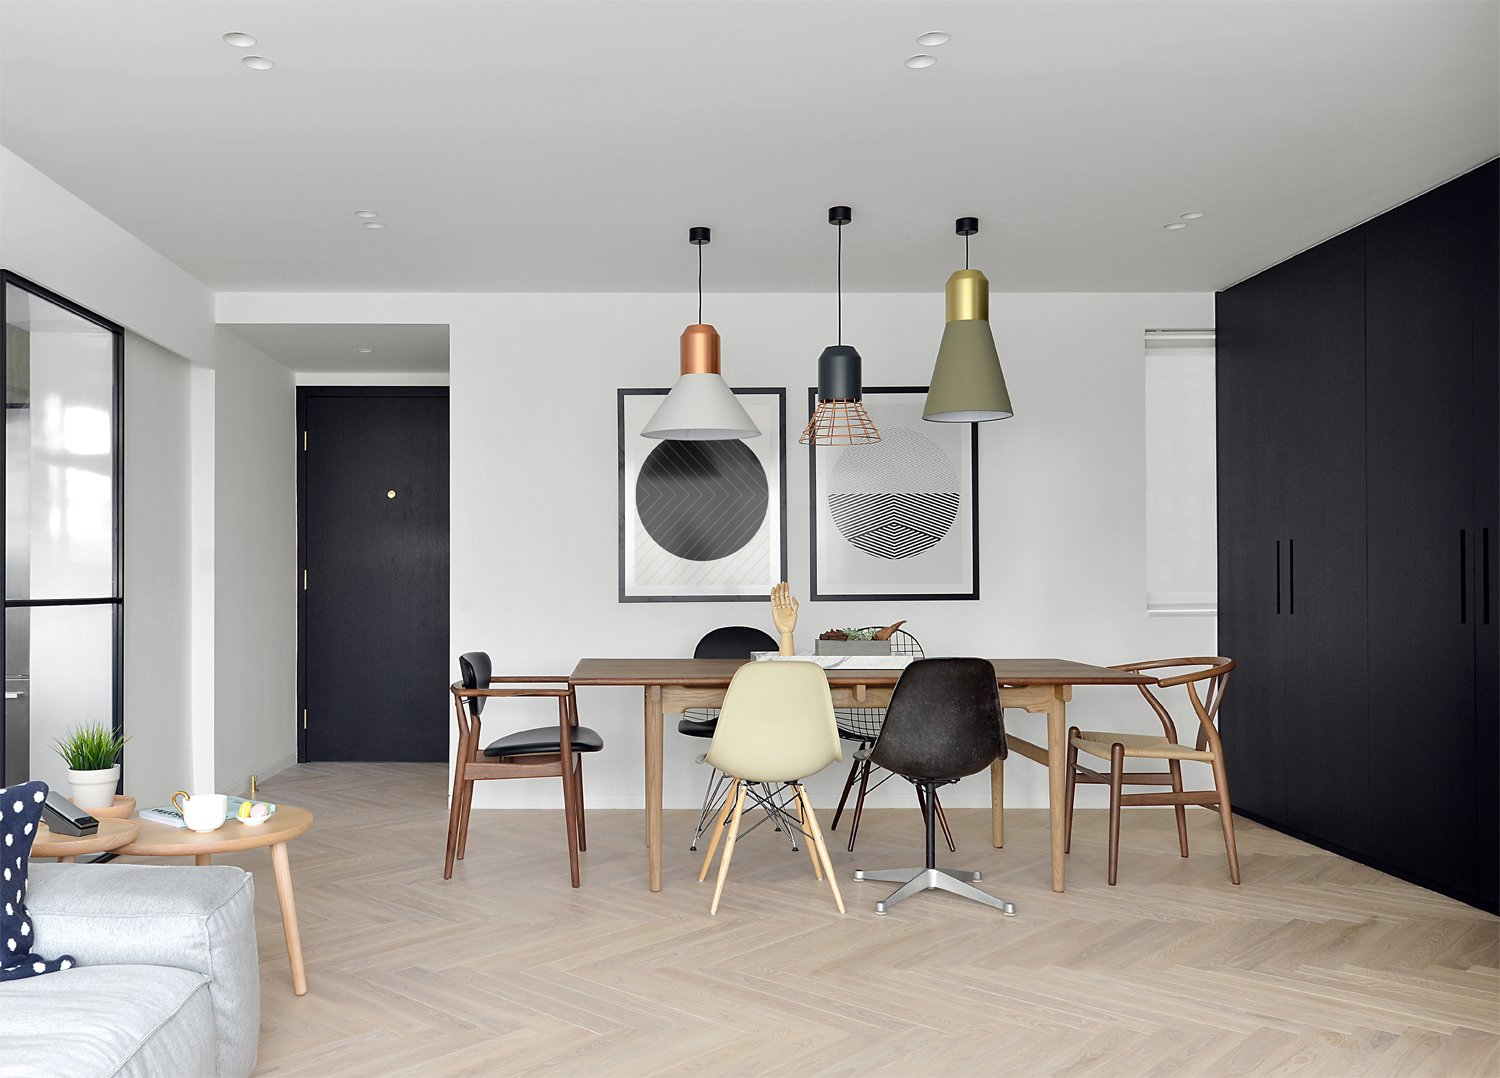 Dining Area The CH327 Table HK43000 Was A 100th Anniversary Edition By Carl Hansen Son And Came From Manks 3 F Factory 1 Yip Fat Street